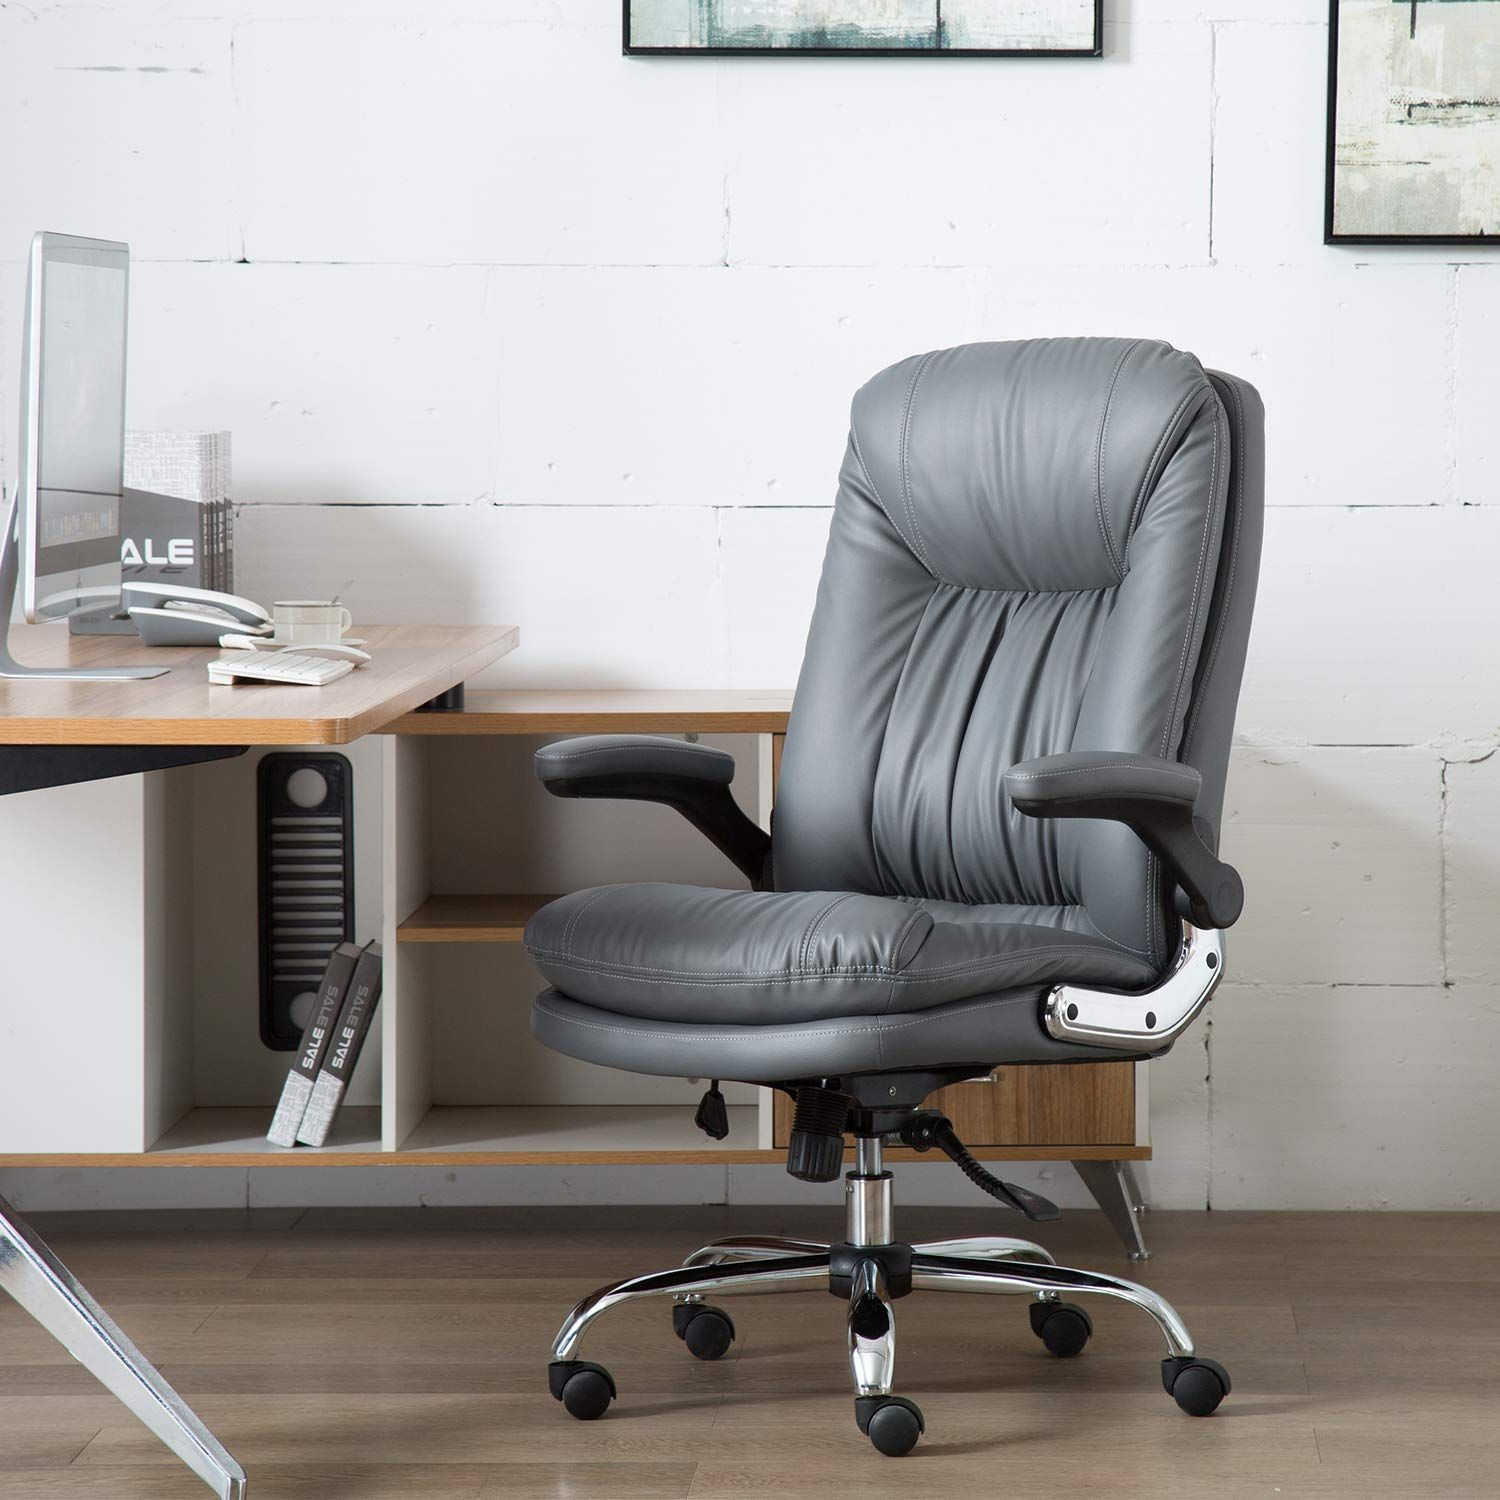 YAMASORO Ergonomic Executive Office Chair Adjustable